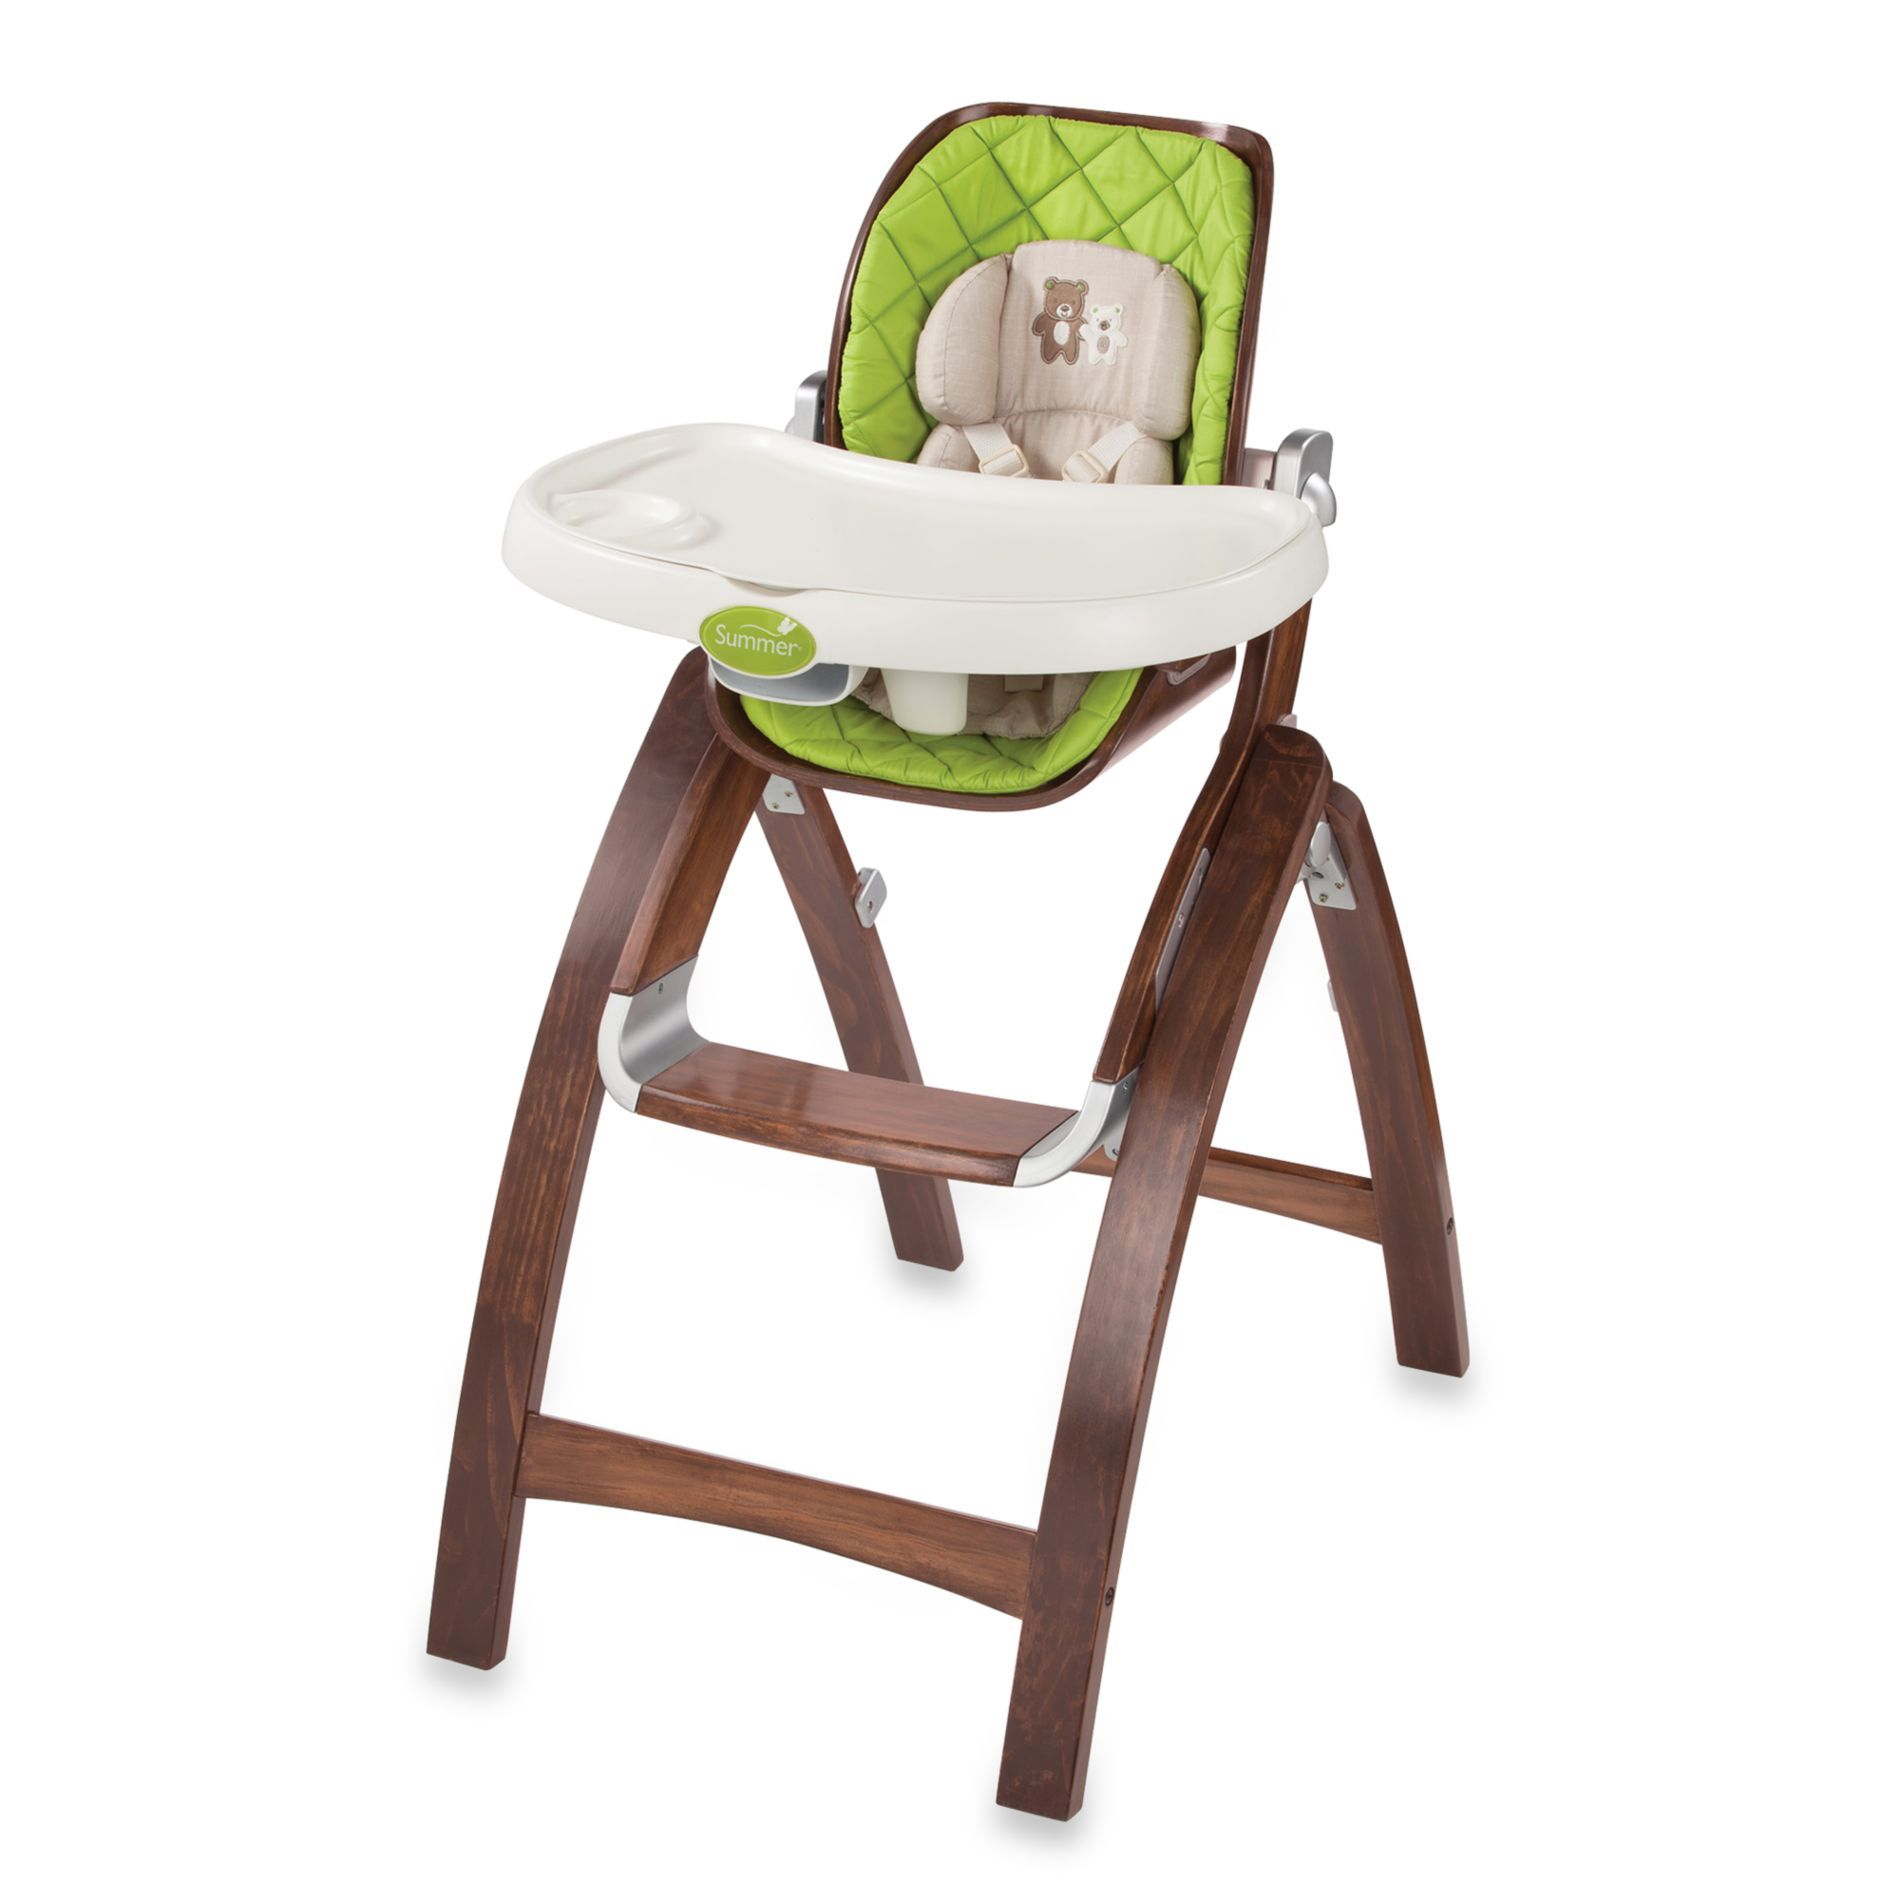 chair kids of feeding buy height on size chairs table for full little high booster cover best rated newborn highchair babies hook adjustable baby toddler